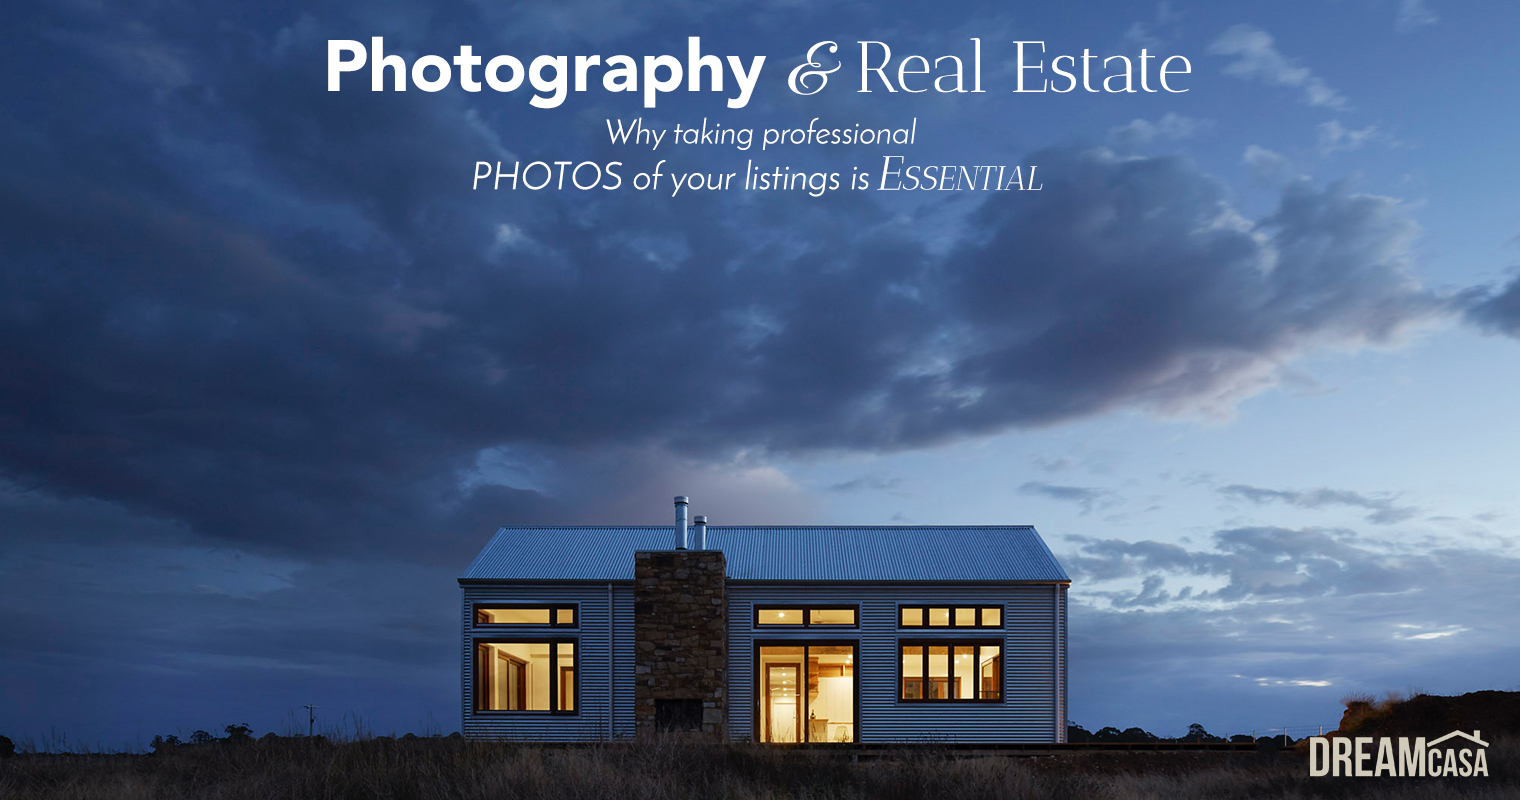 Why Taking Professional Photos of Your Listings is Essential